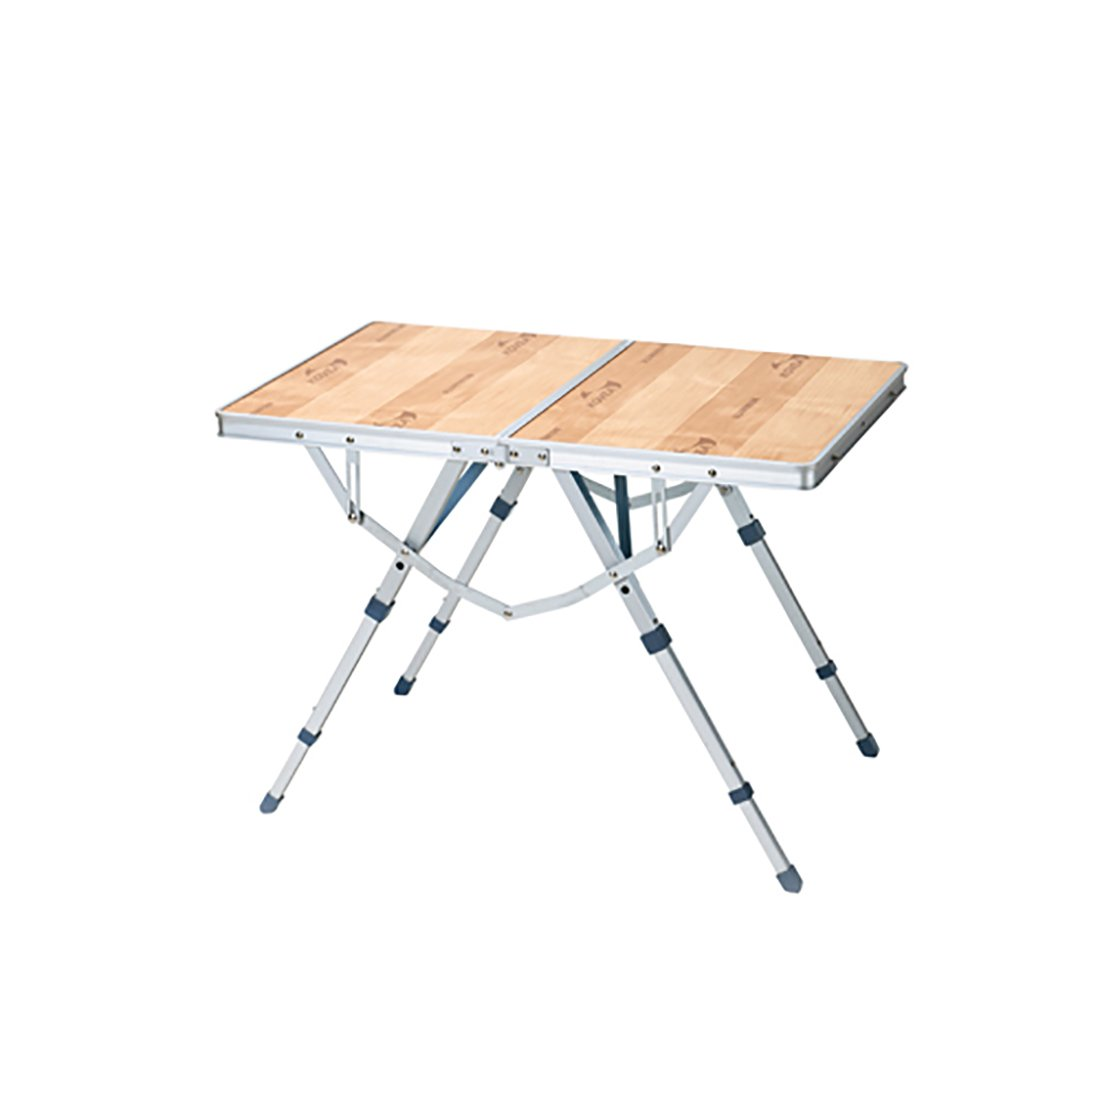 Al One Action Table - S by Kovea